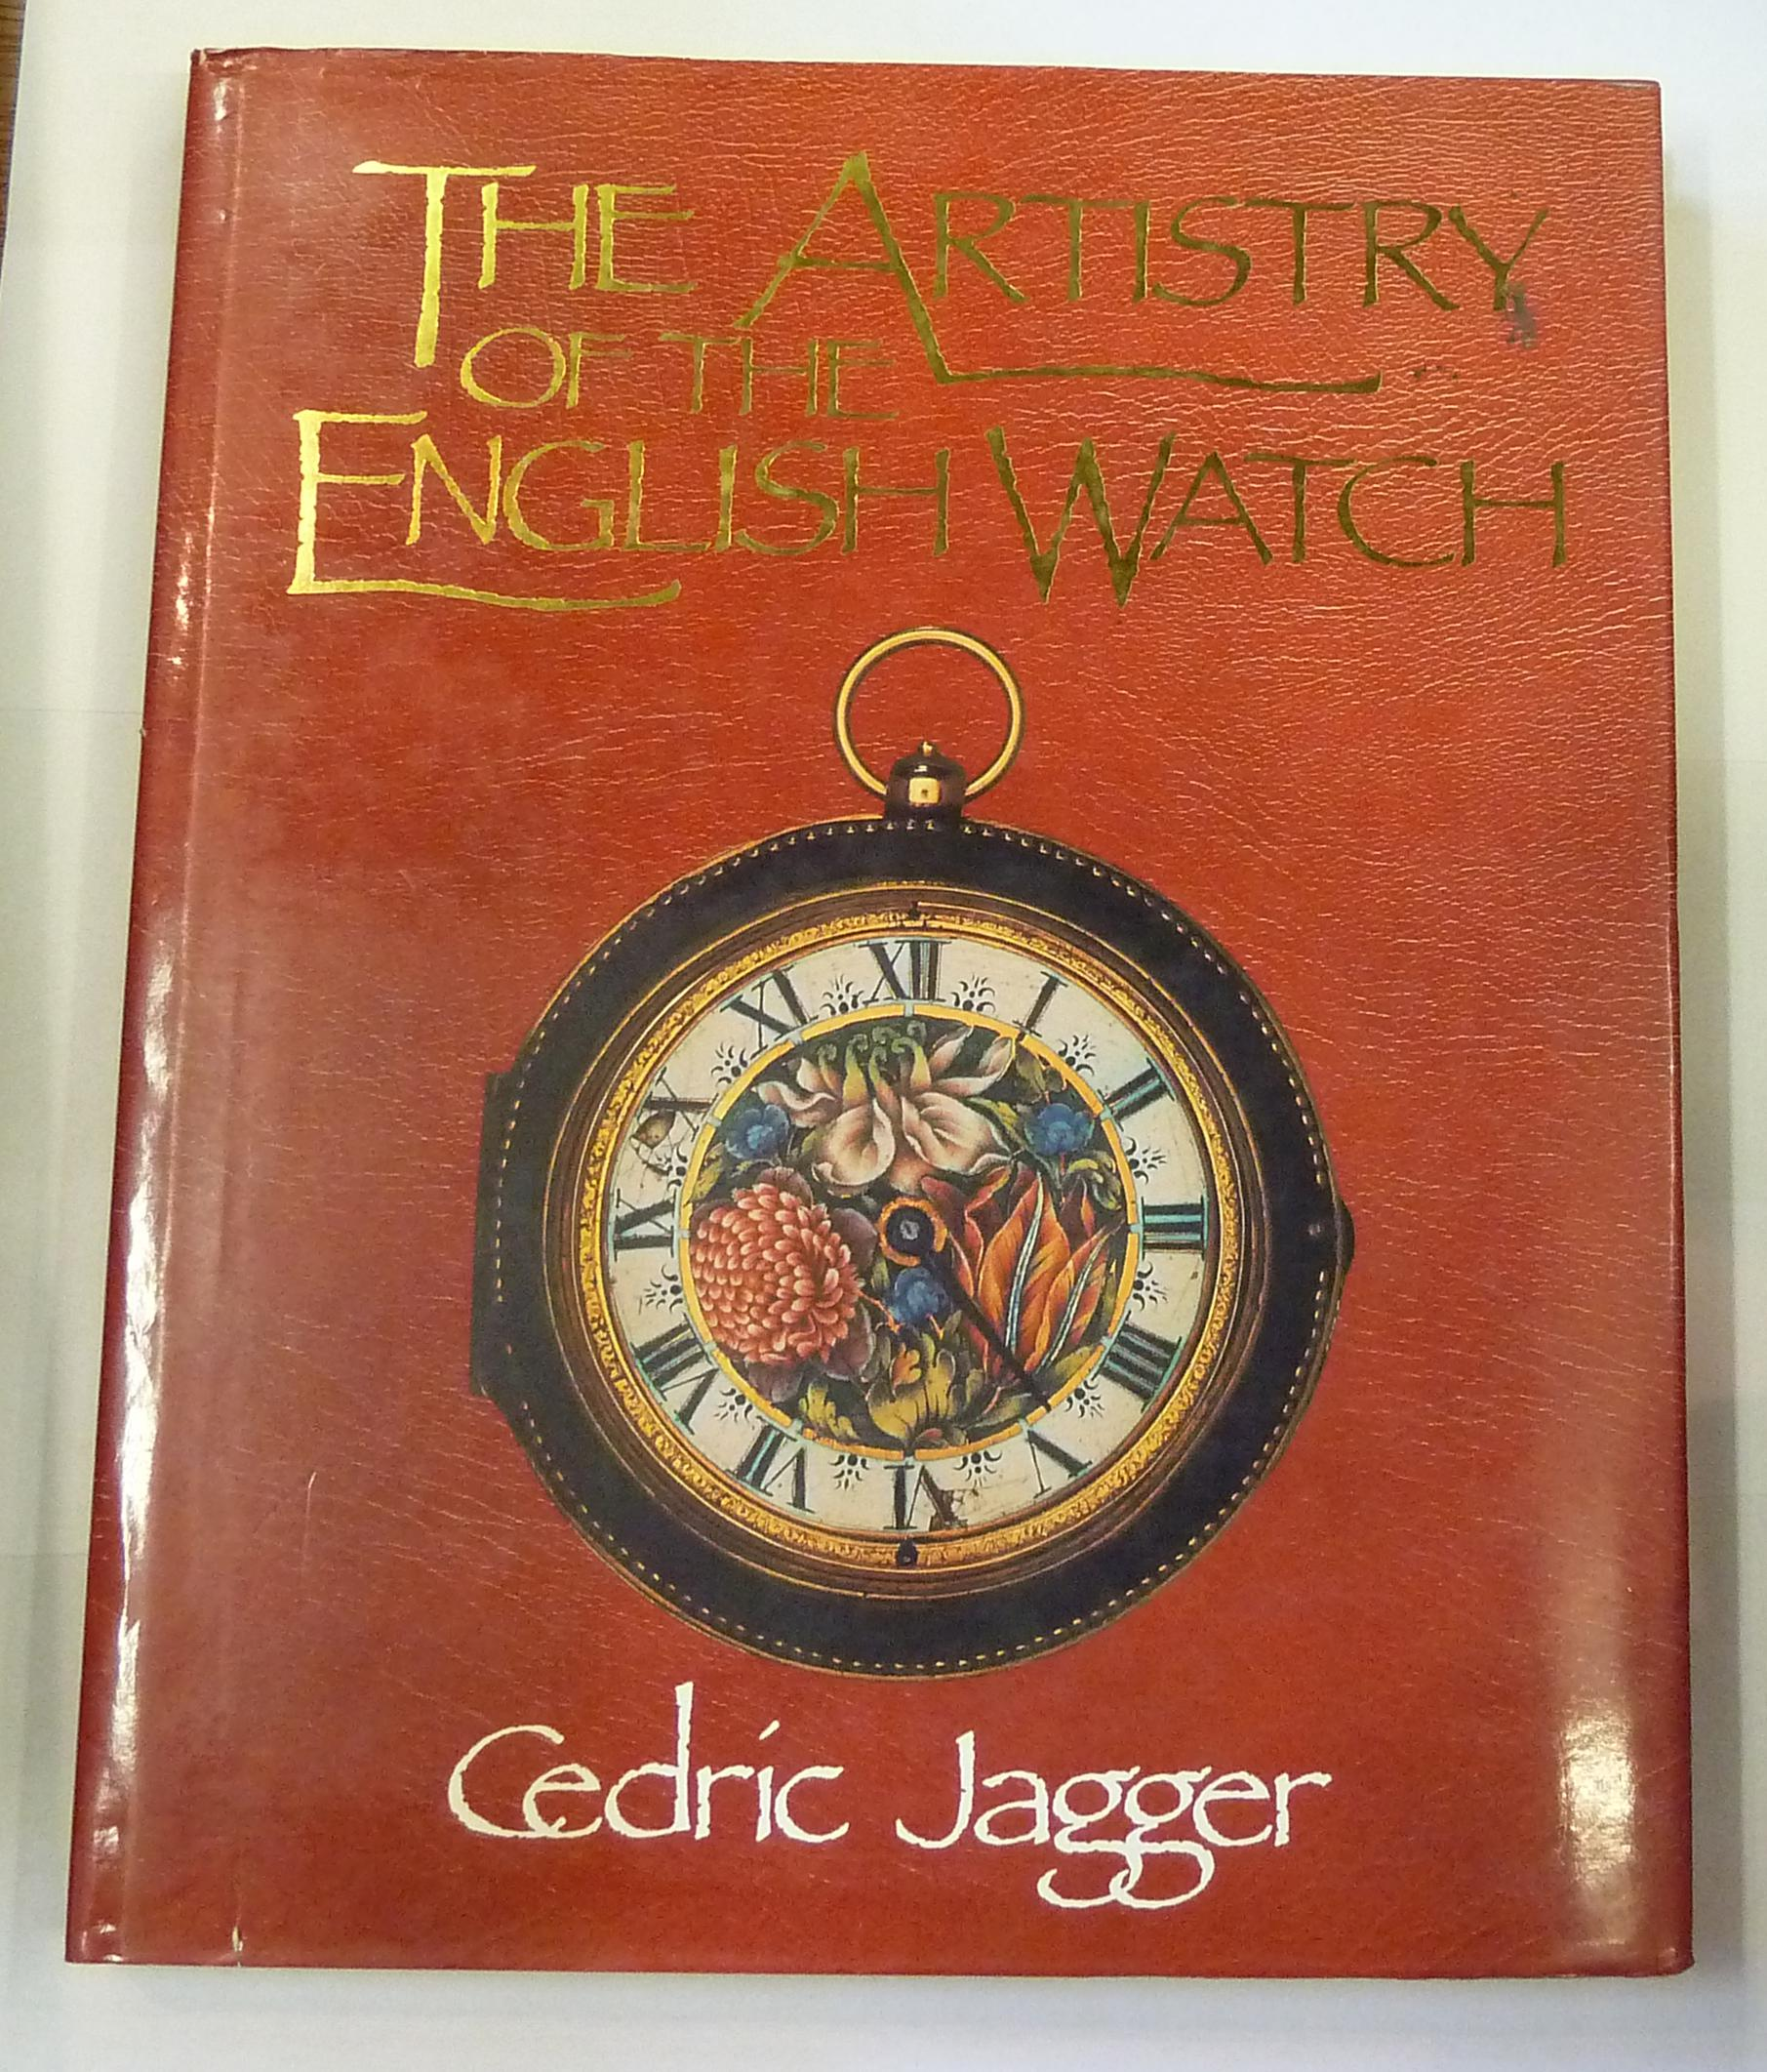 The Artistry of the English Watch